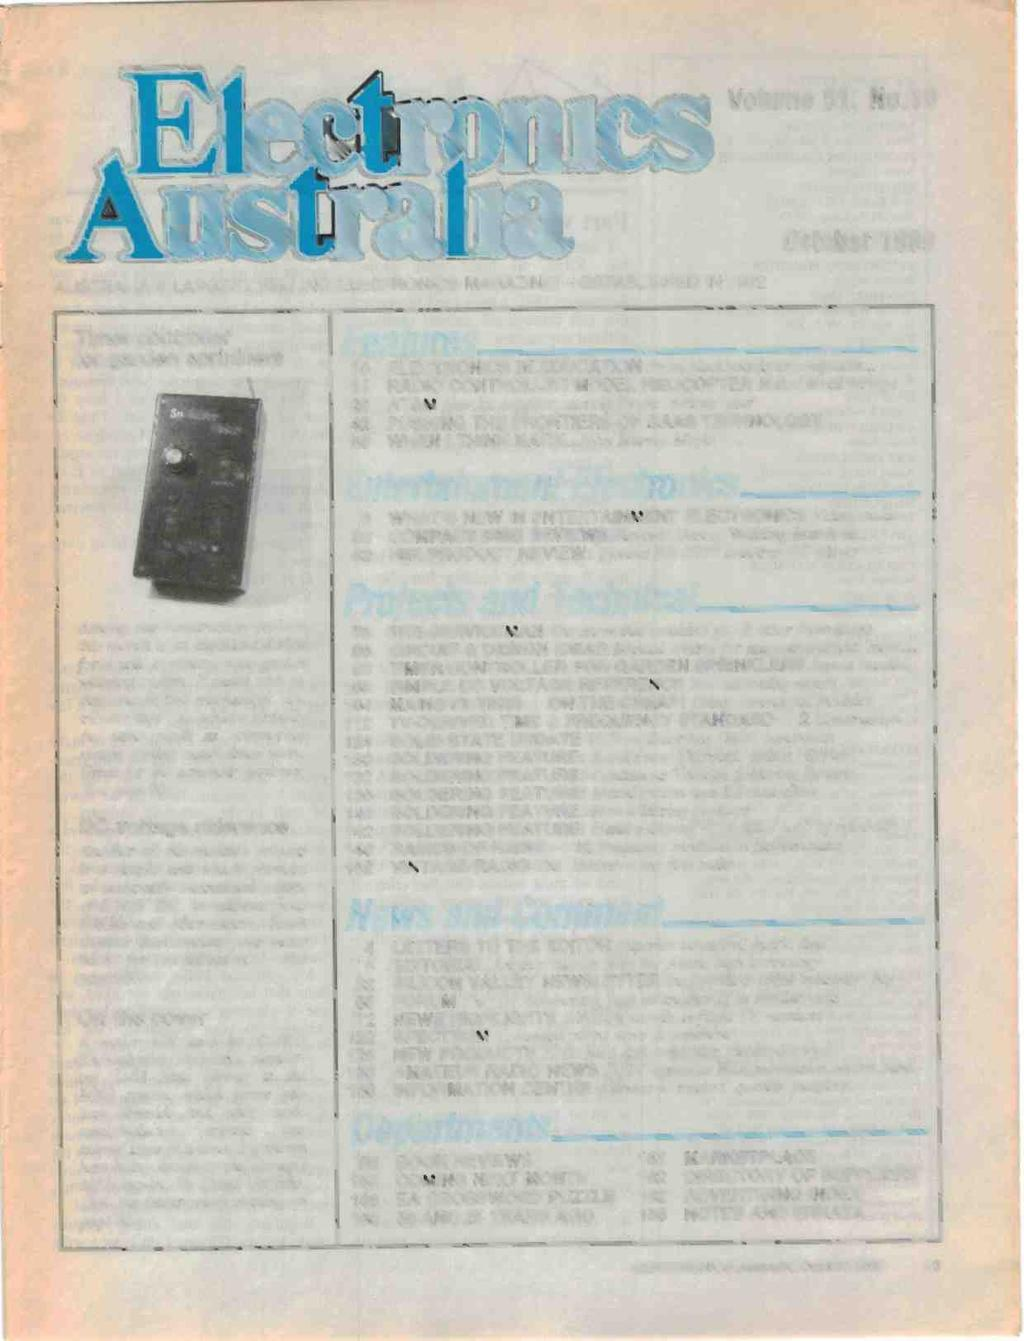 R F Csiro Breakthrough In Super Fast Transistors Controller Likewise Sprinkler Valve Wiring Diagram Besides Volume 51 No10 Australias Largest Selling Electronics Magazine Established 1922 October